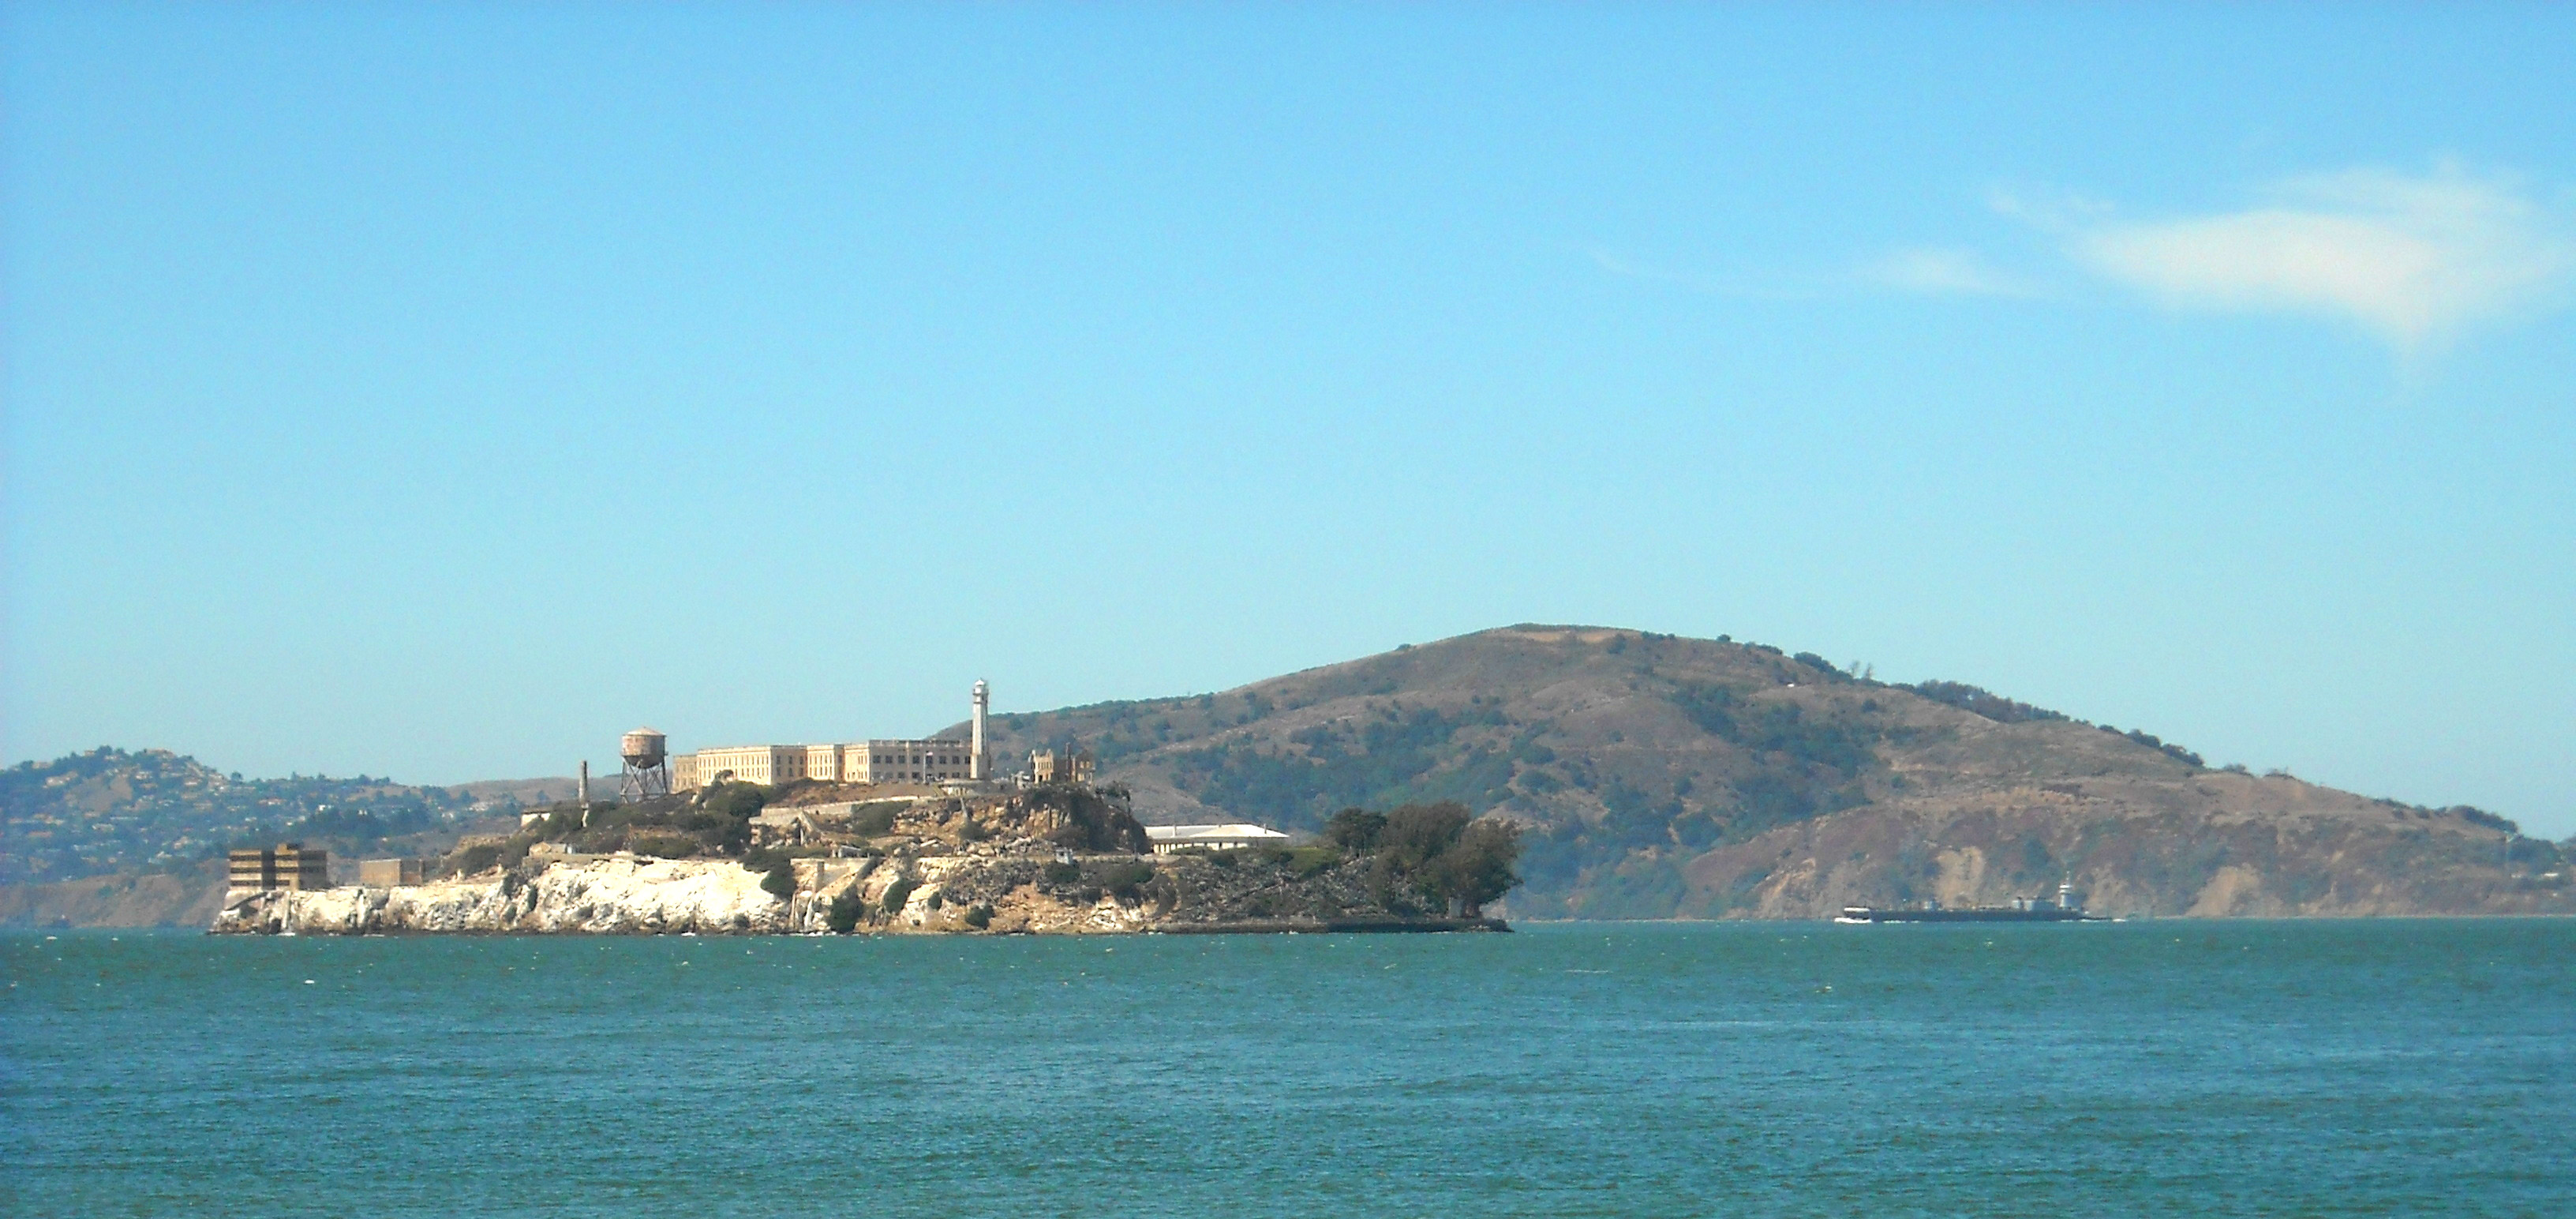 filealcatraz amp angel island 2875307468jpg wikipedia